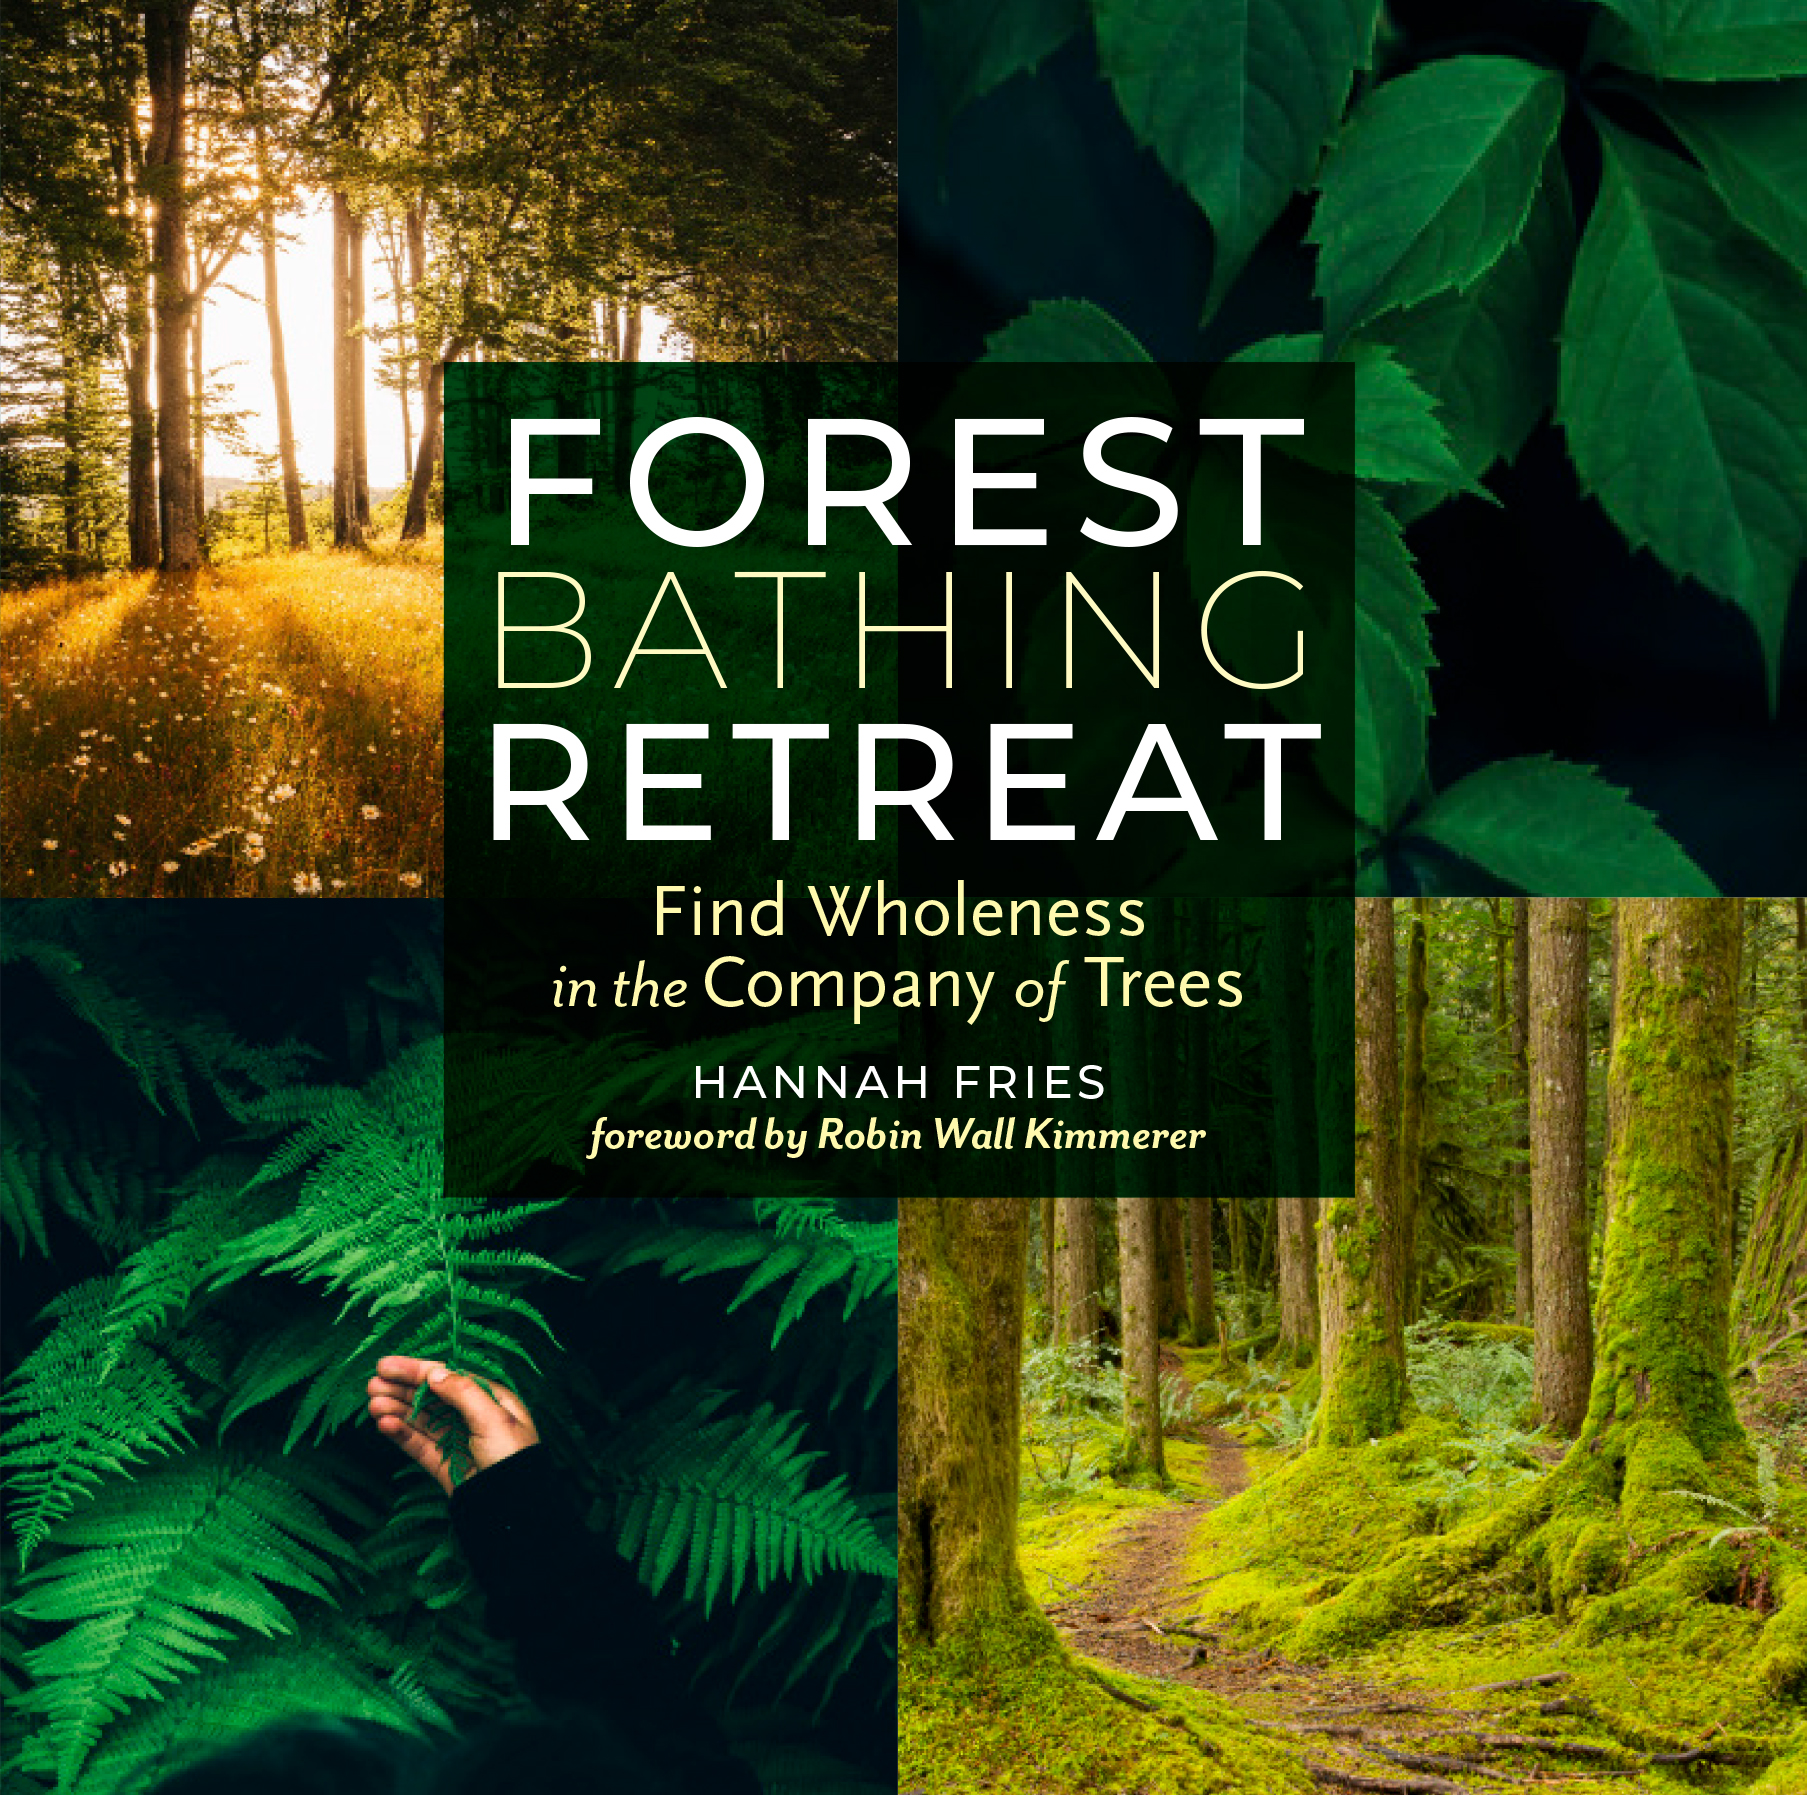 Forest bathing retreat find wholeness in the company of trees